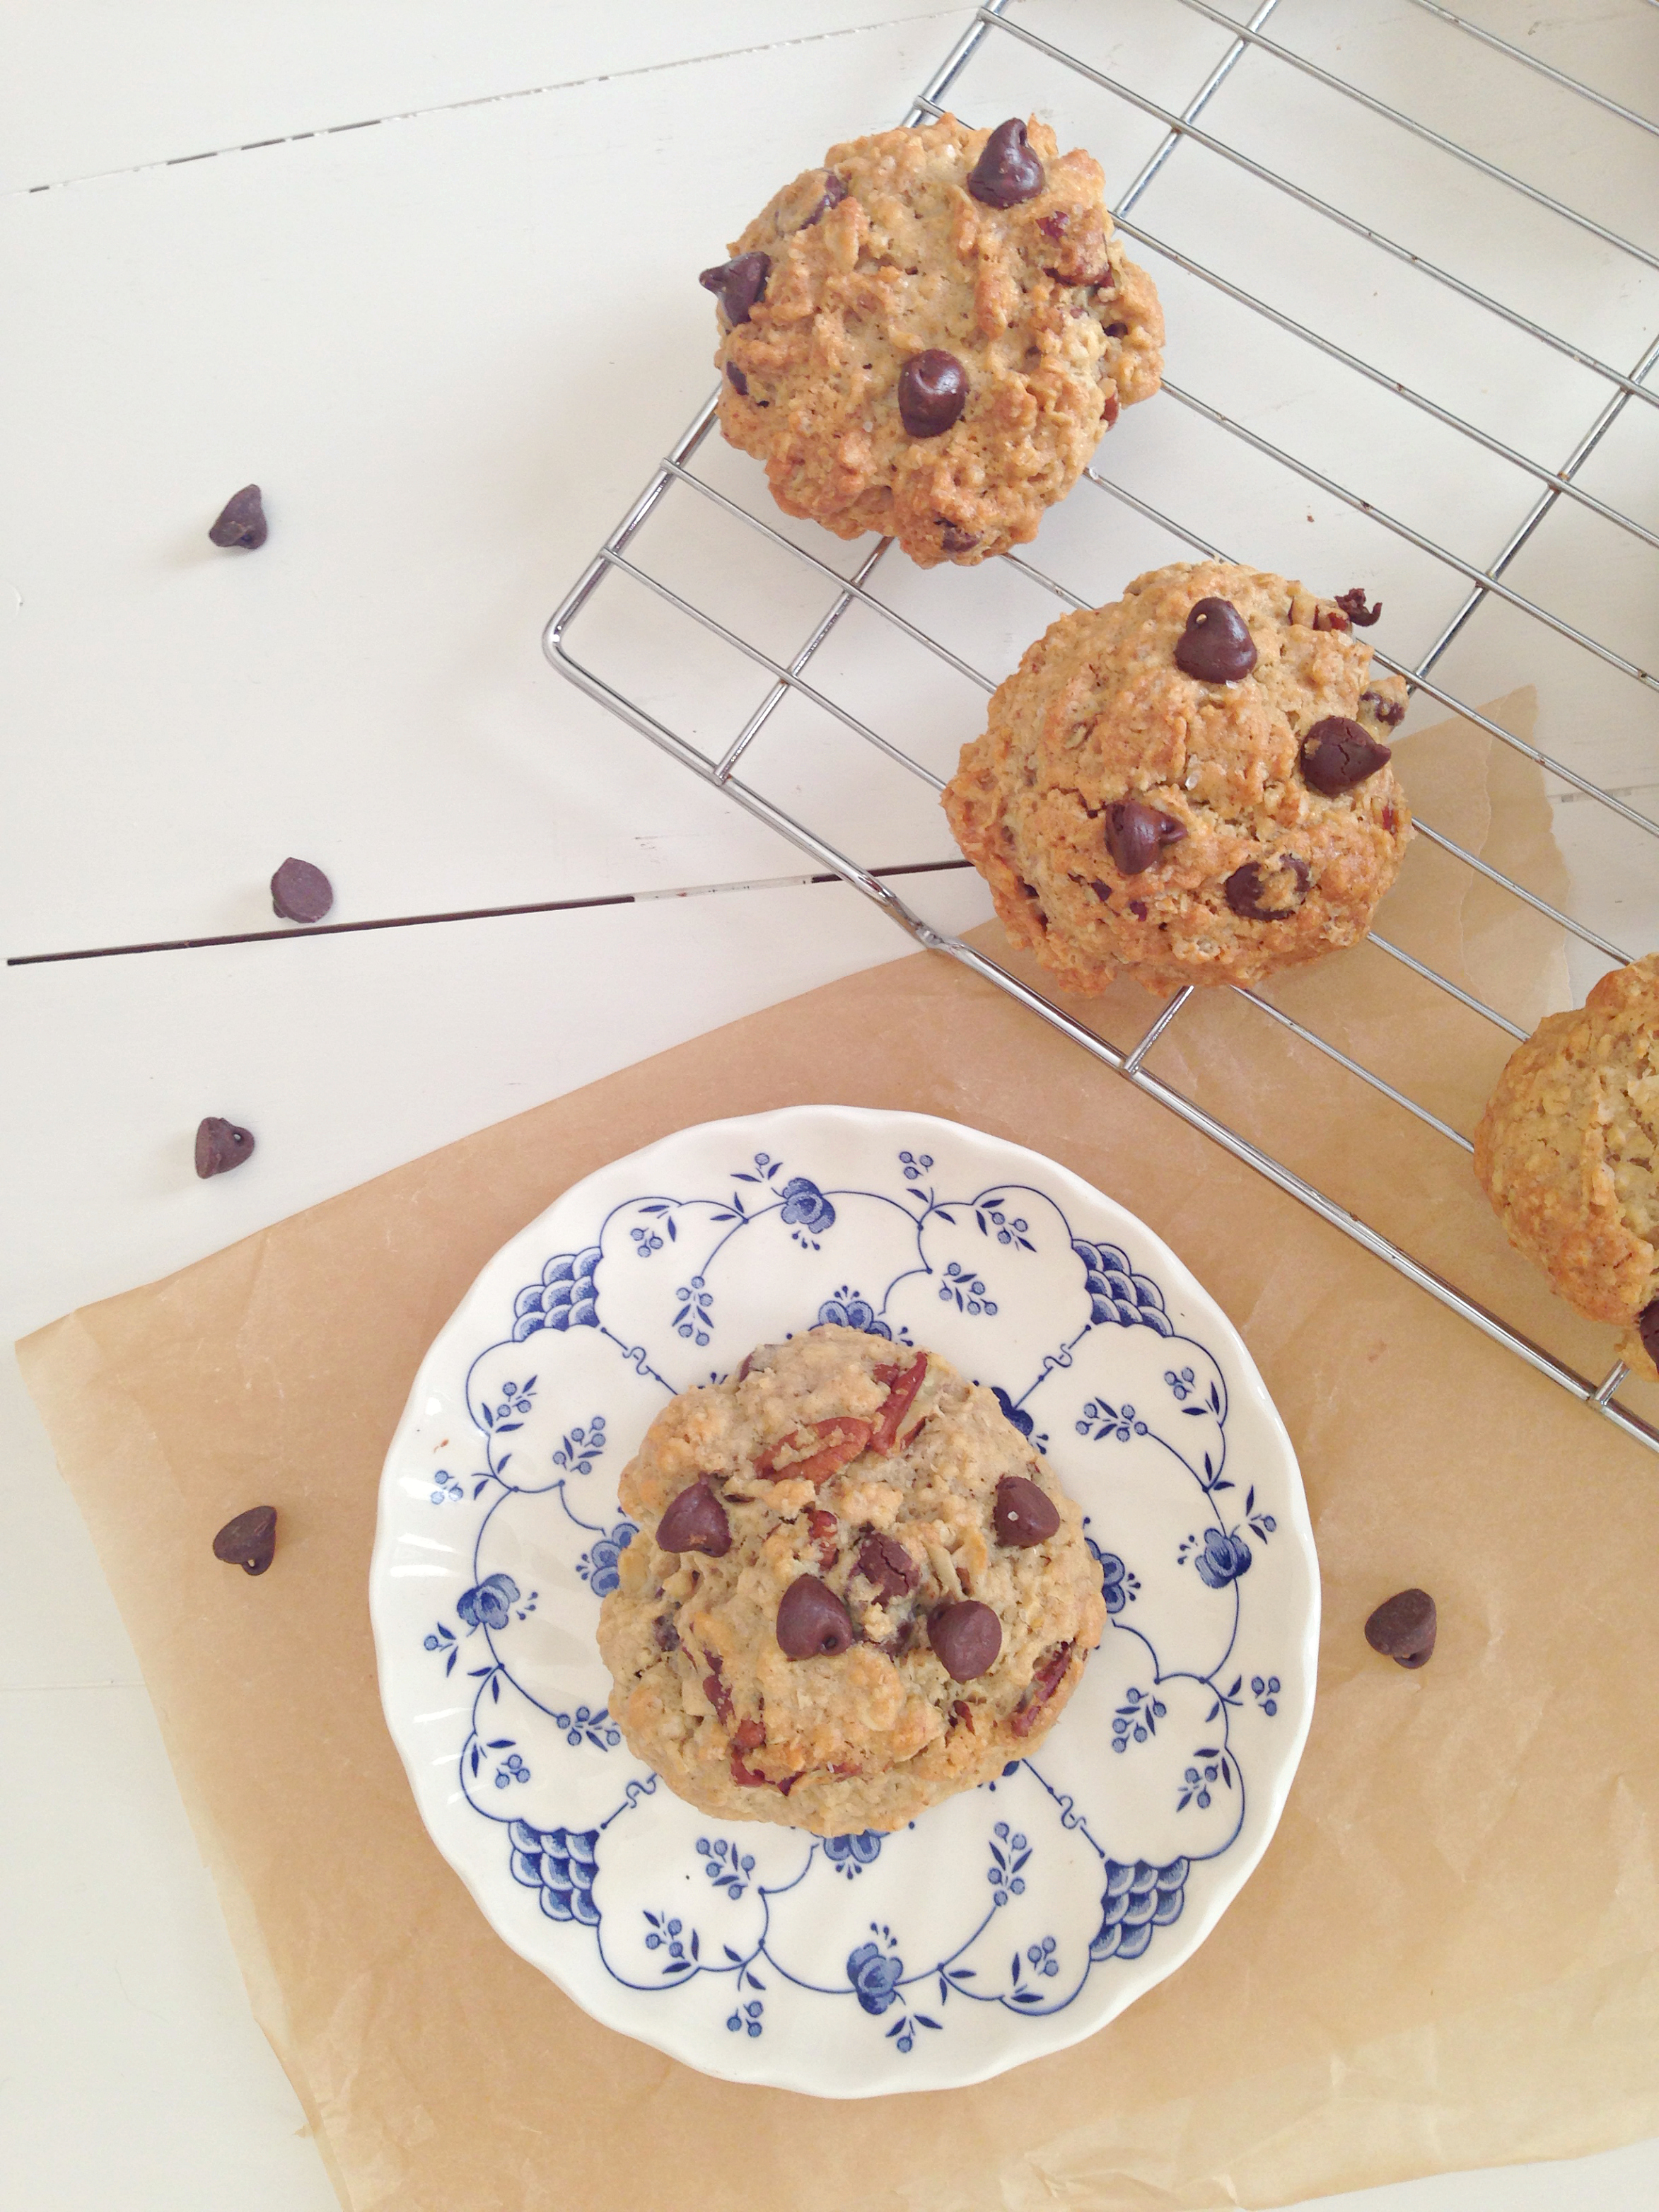 Oatmeal Pecan Chocolate Chip Cookies by @mskerryedwards - find the easy recipe at kerrycooks.com!